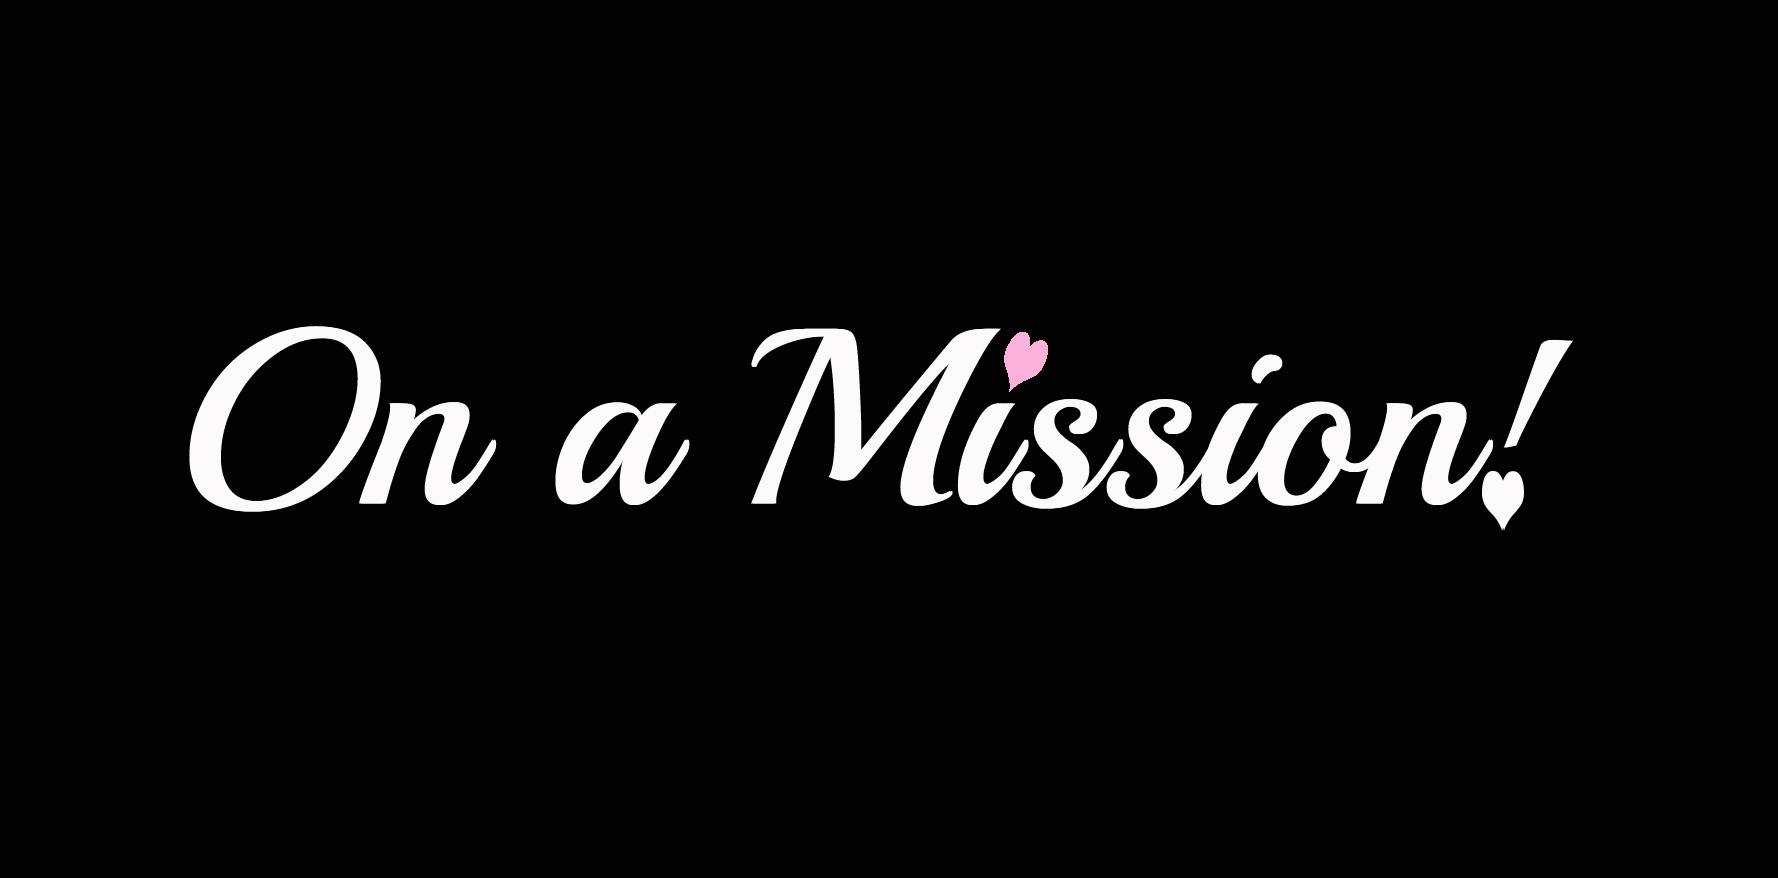 on a mission wording for t-shirt back1c.jpg